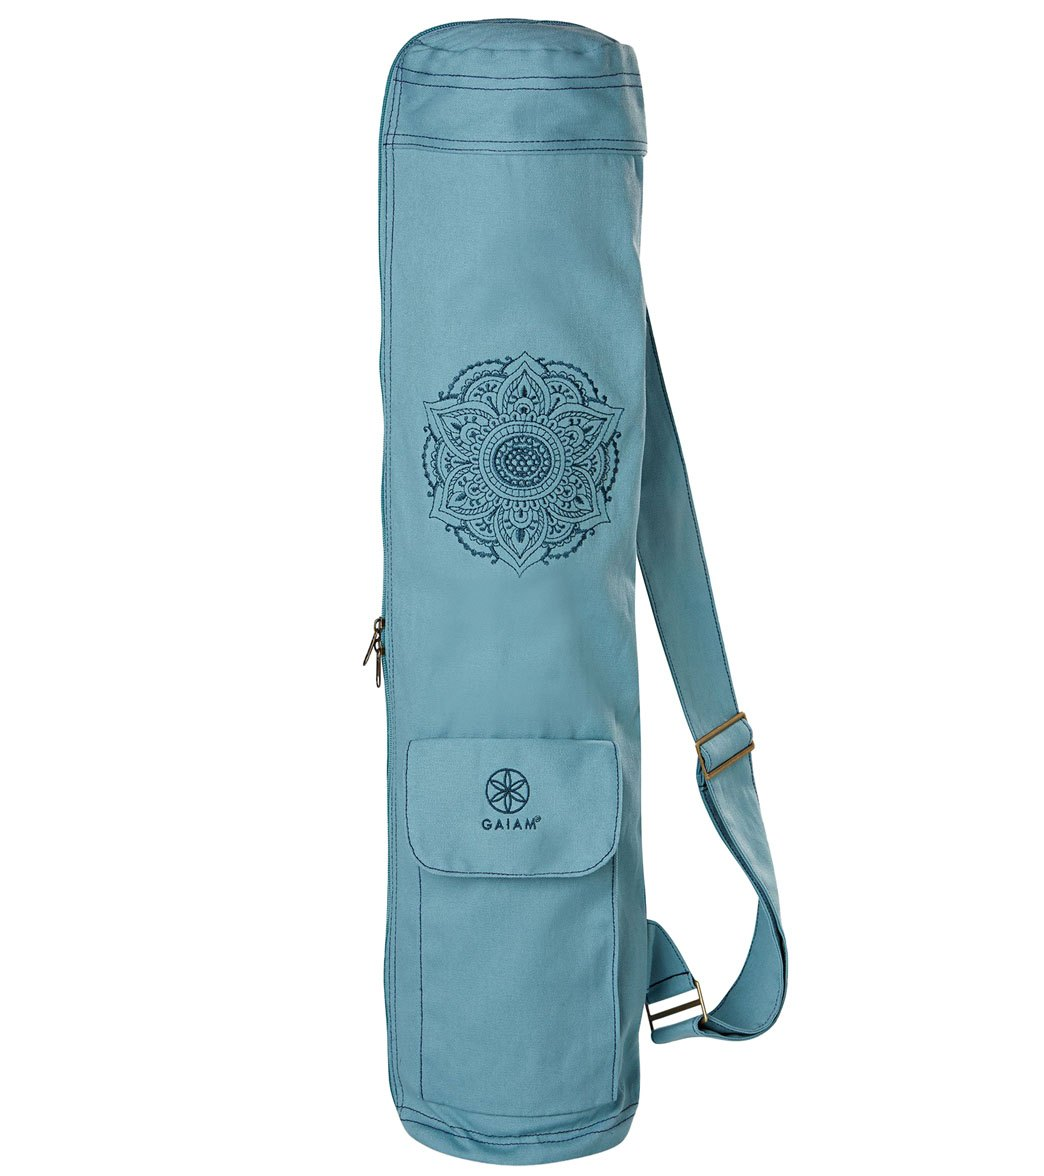 Gaiam Niagara Embroidered Cargo Yoga Mat Bags At Yogaoutlet